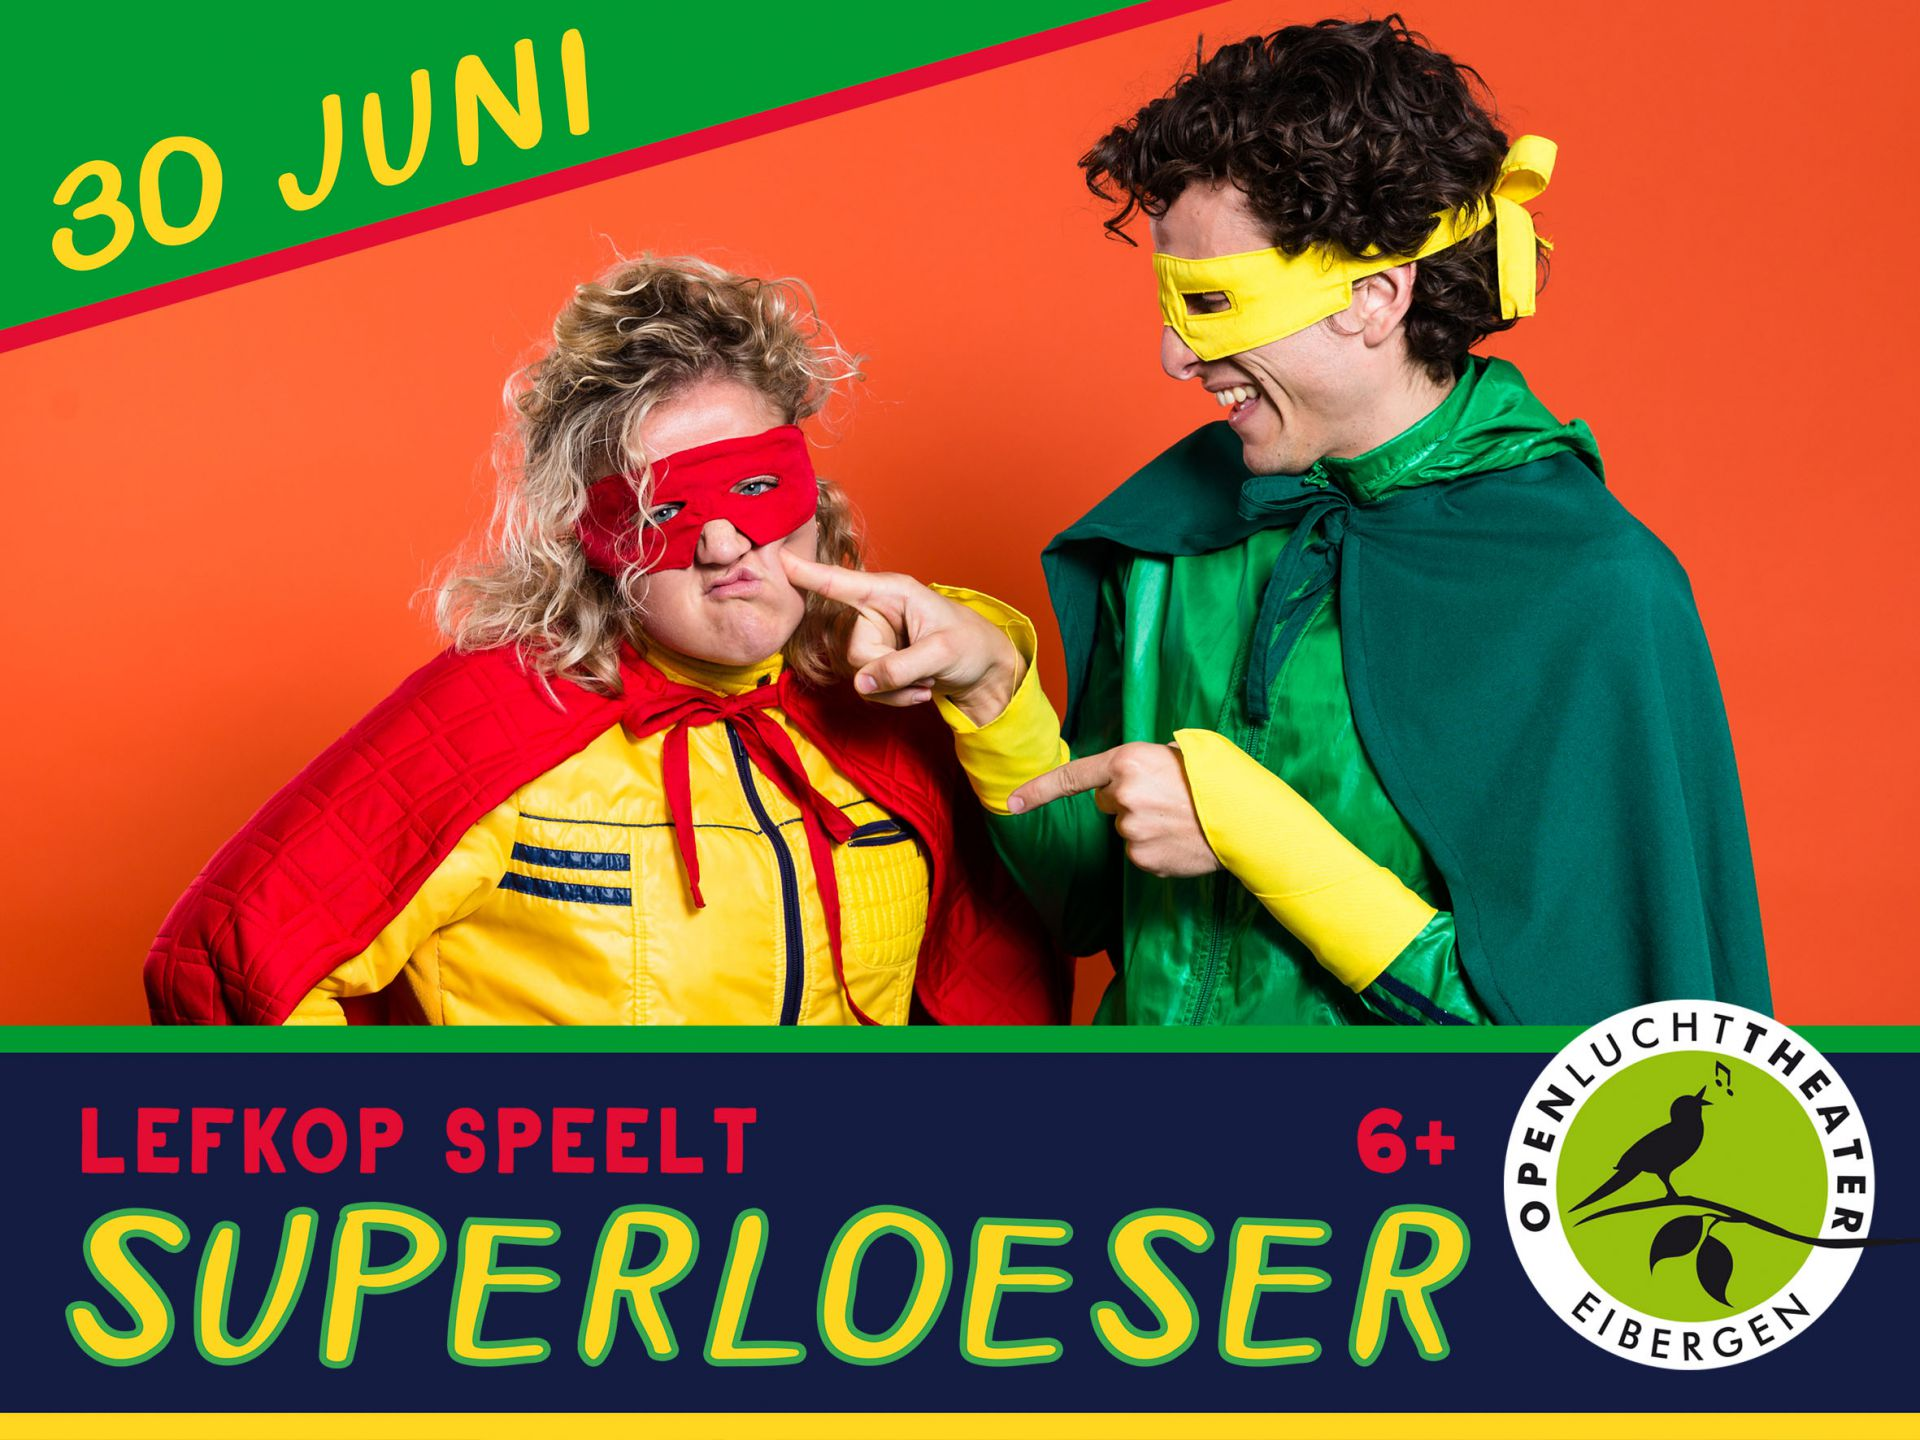 Superloeser door Lefkop